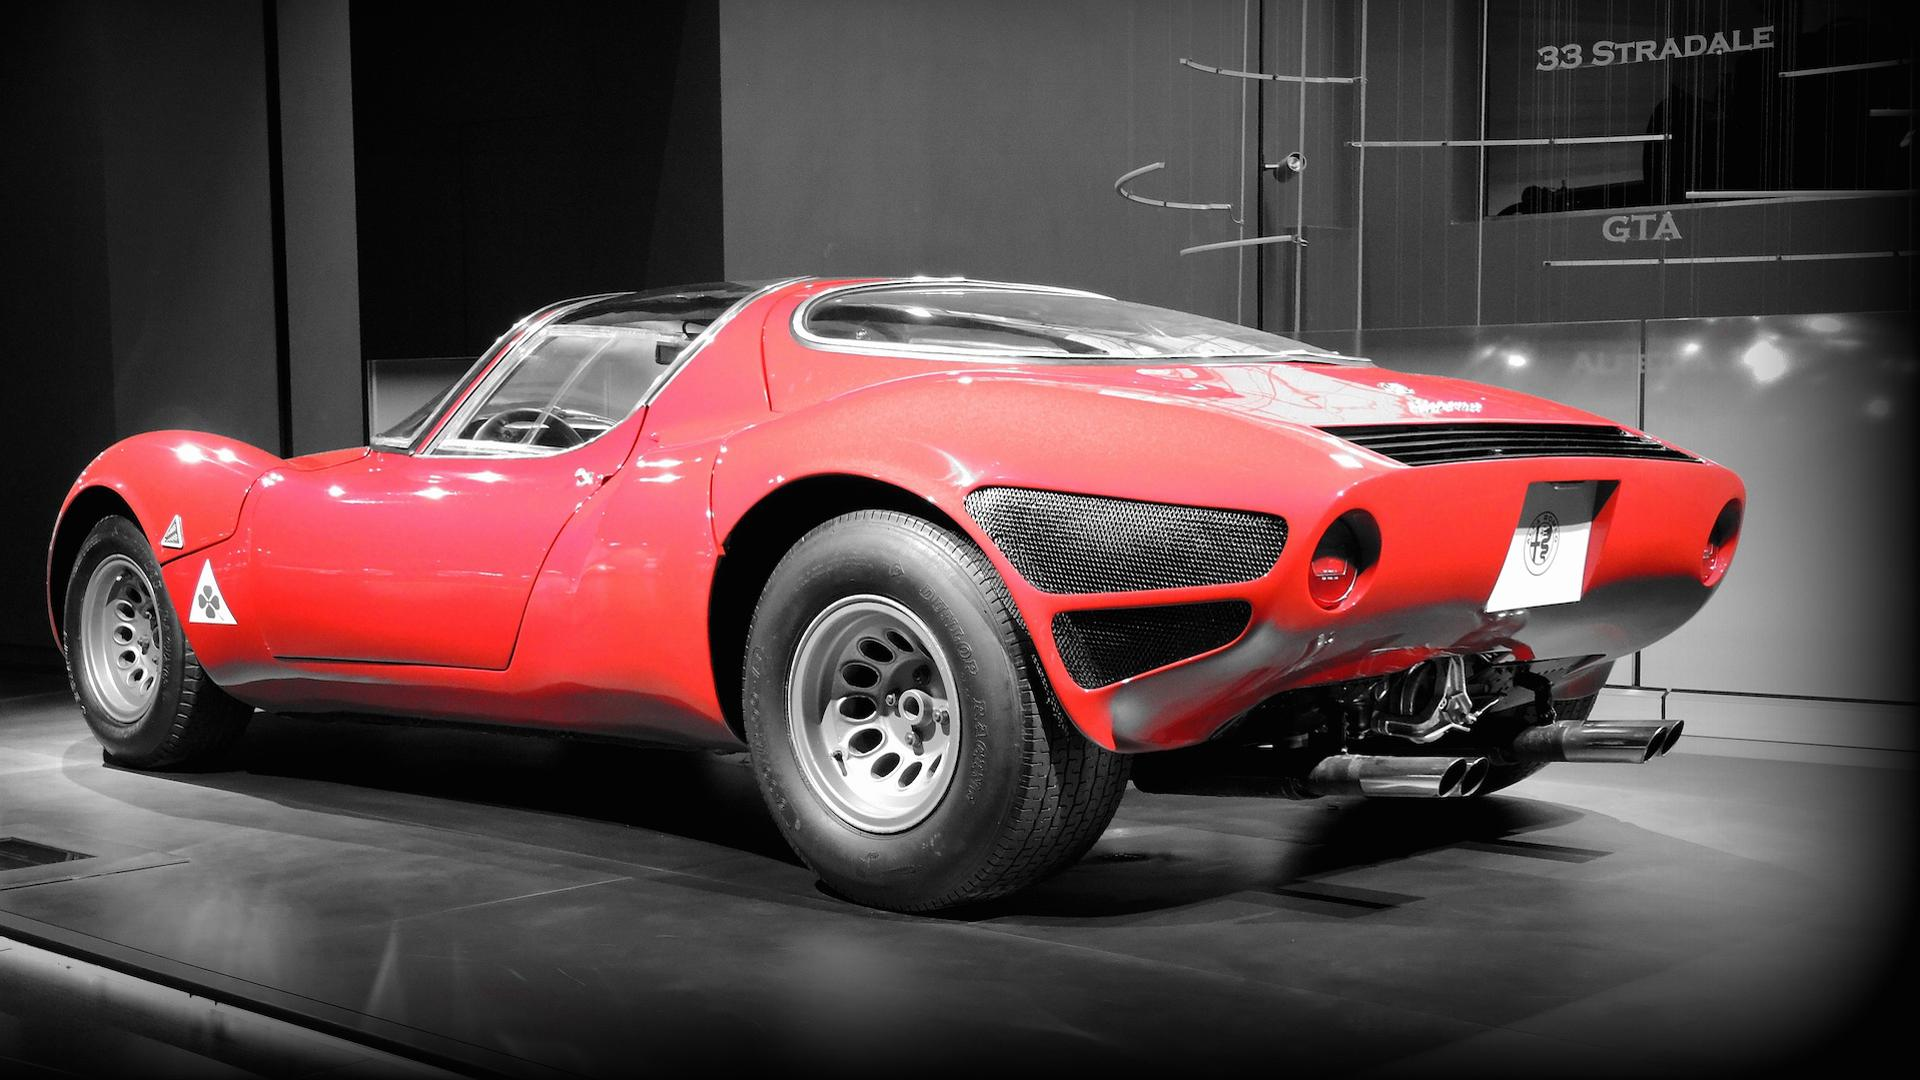 Rare Alfa Romeo Tipo 33 Stradale Sounds Great, Looks Even Better